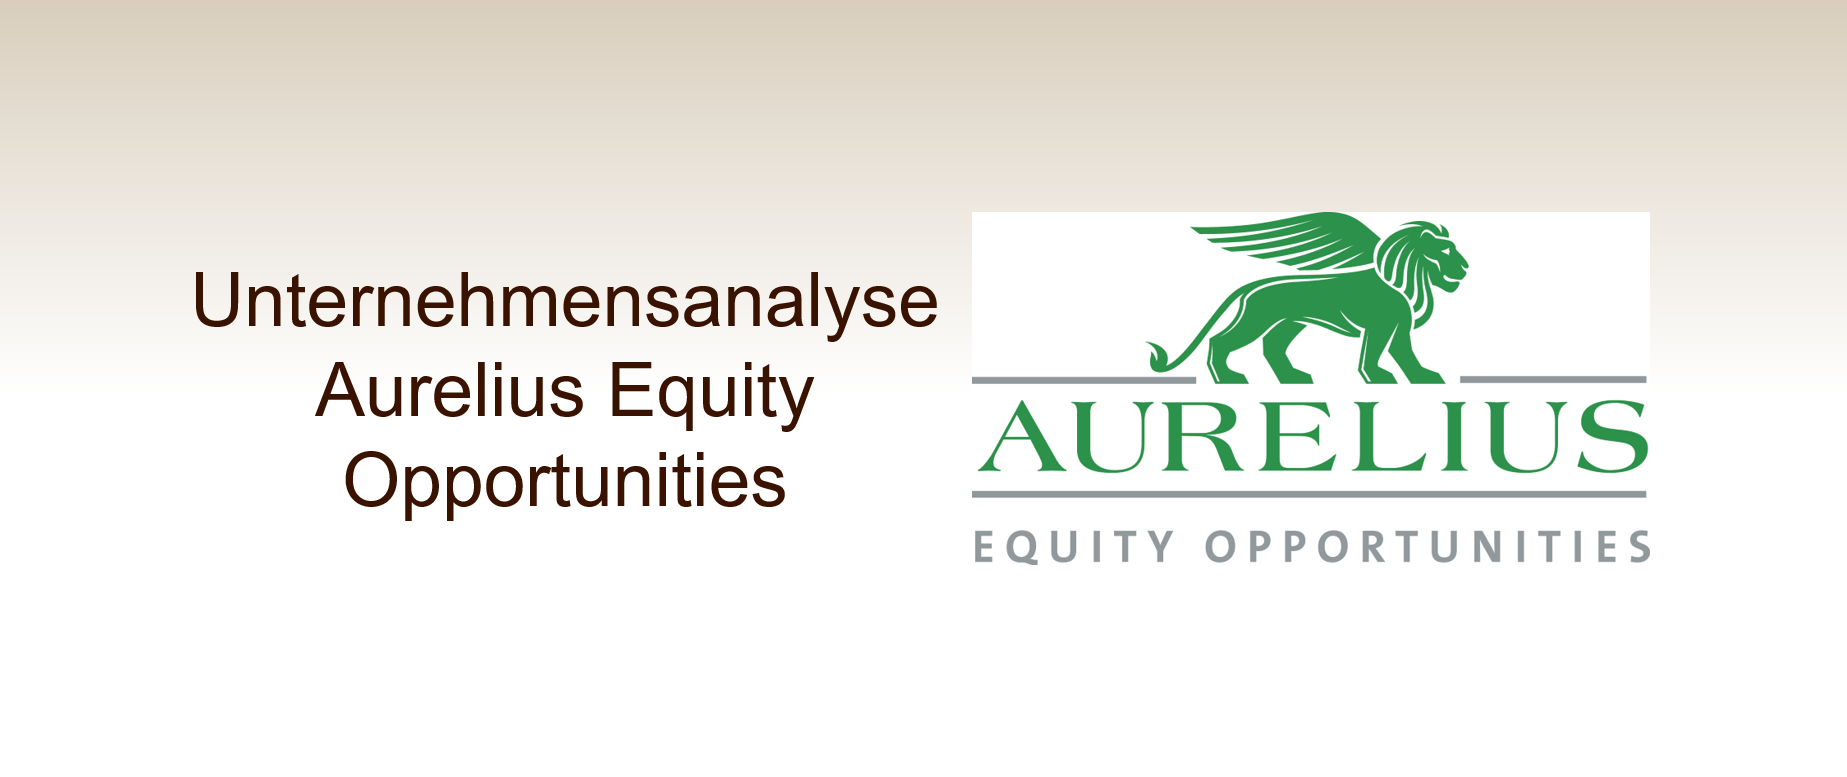 Aurelius Equity Opportunities